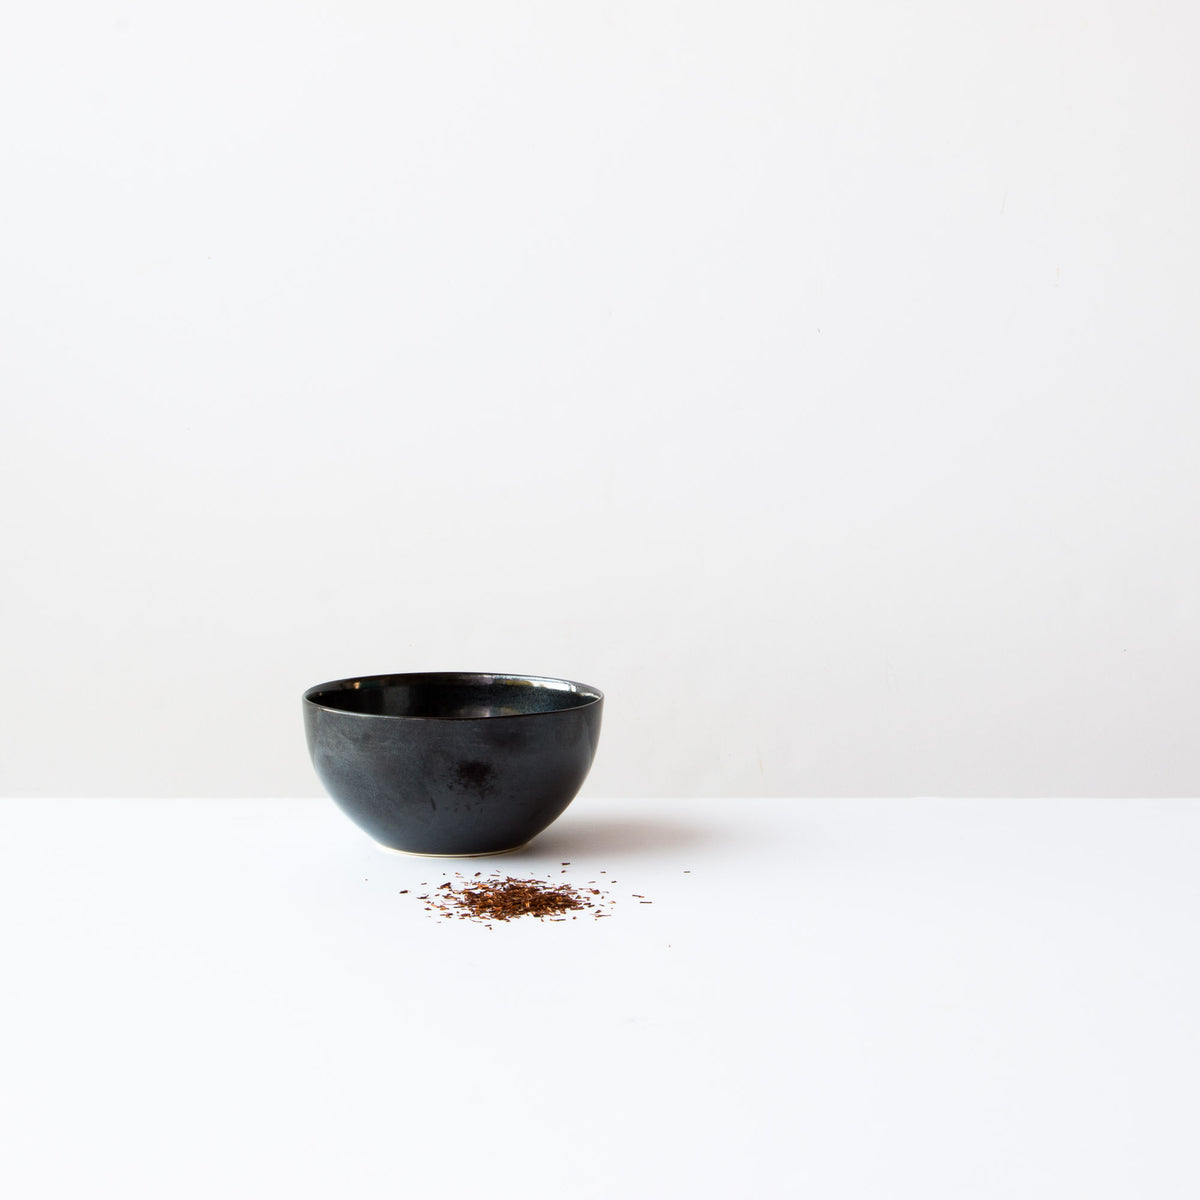 Handmade Porcelain Rice Bowl - Black Porcelain - Sold Online by Chic & Basta